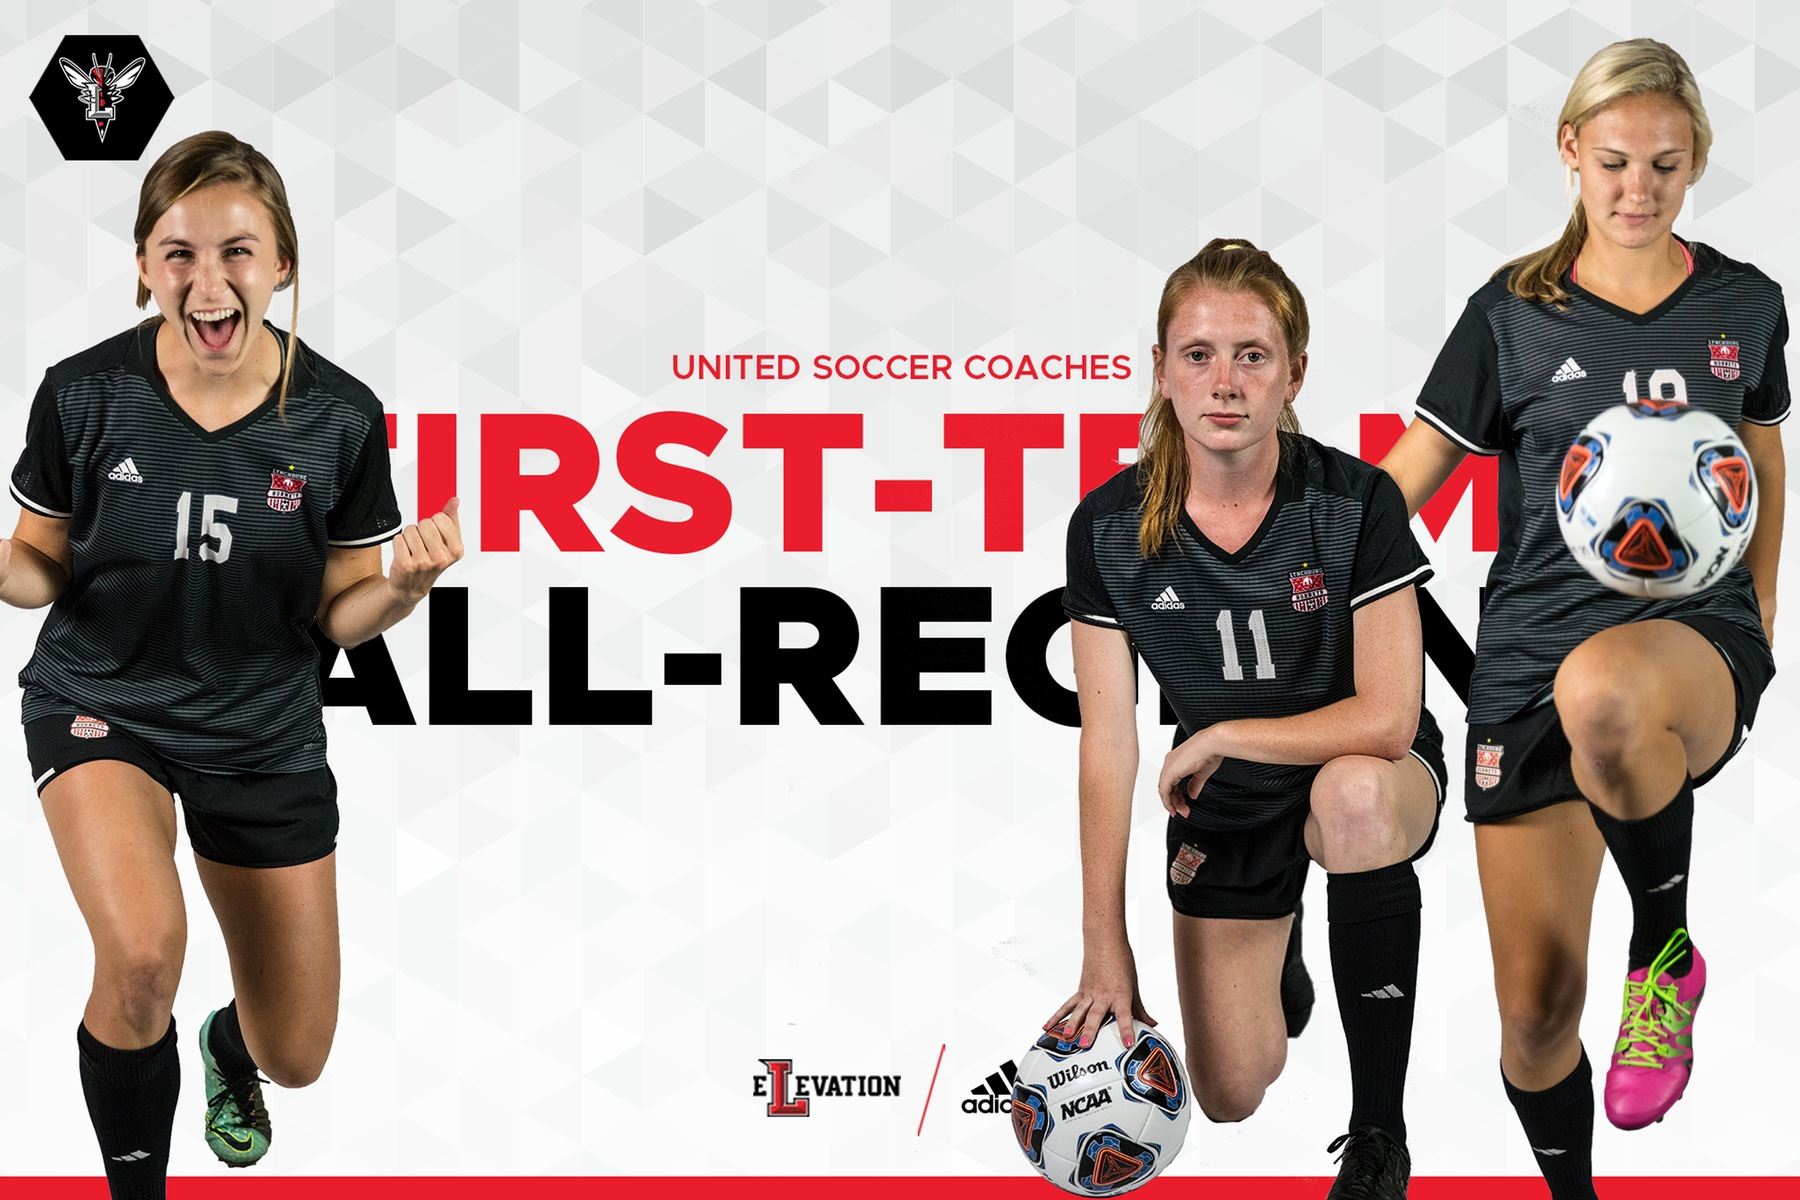 Cutout images of three women's soccer players posing on white background. Text: first-team all-region